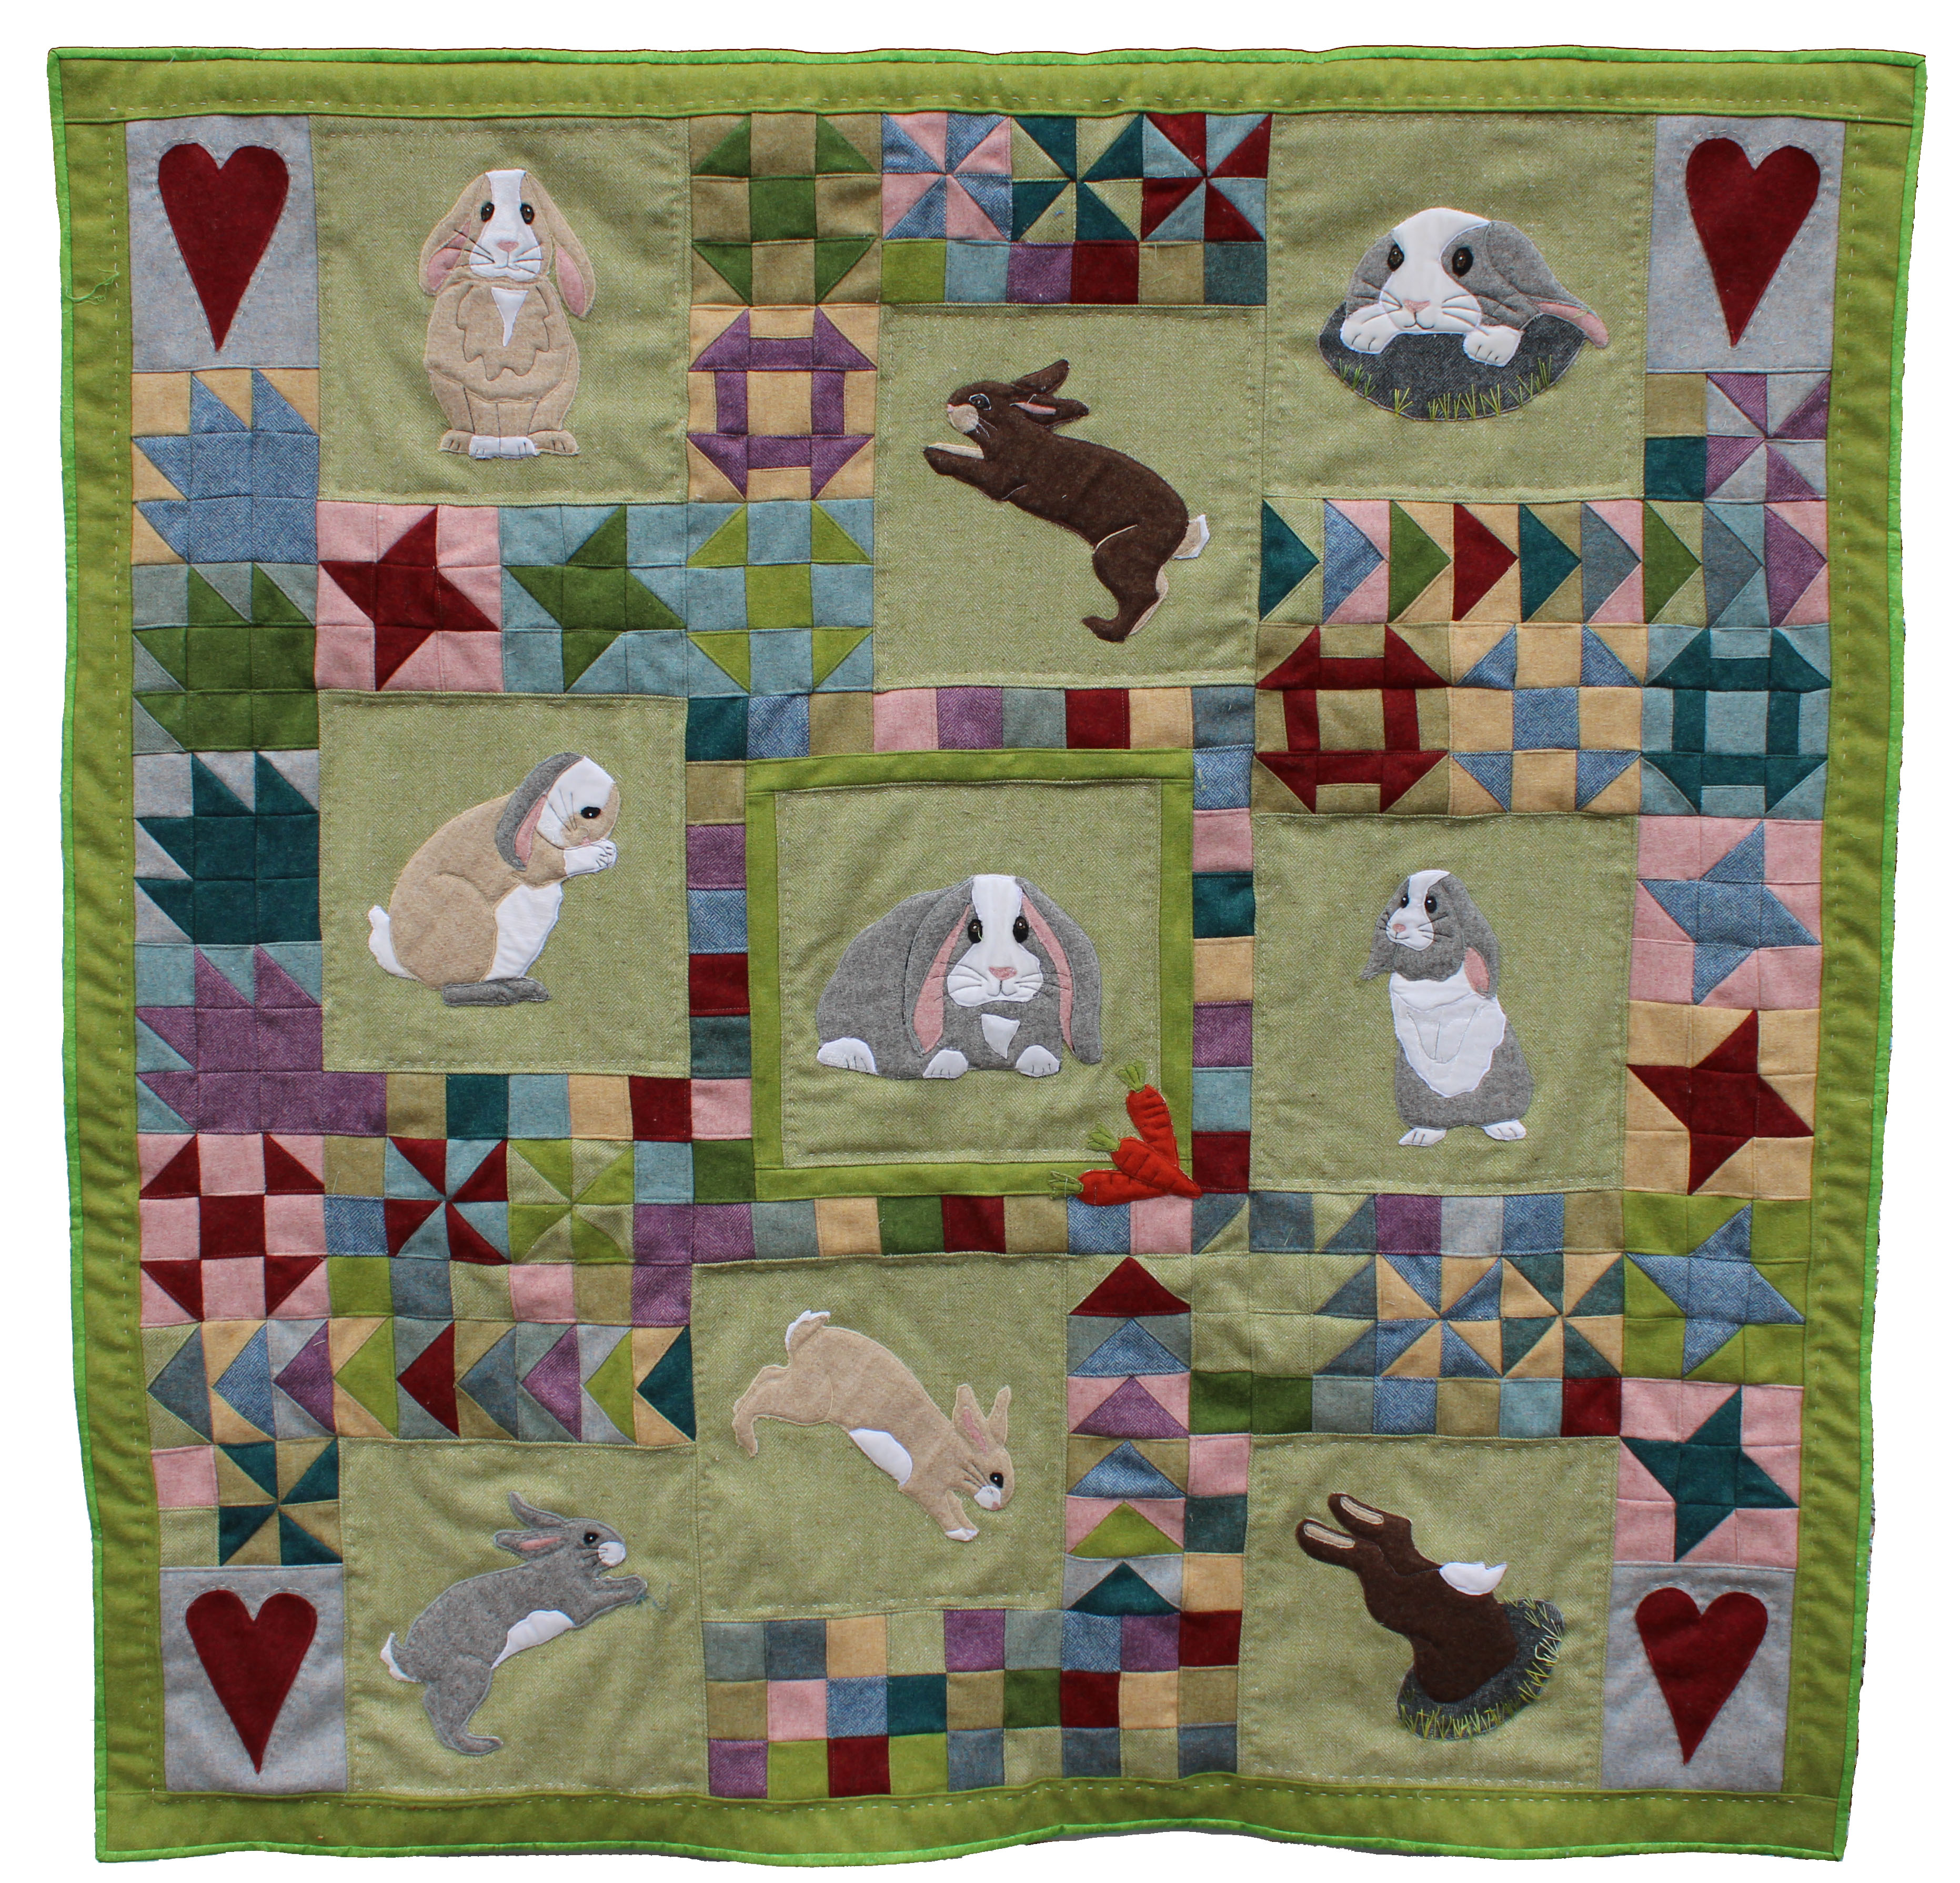 Bunny Love full quilt kit